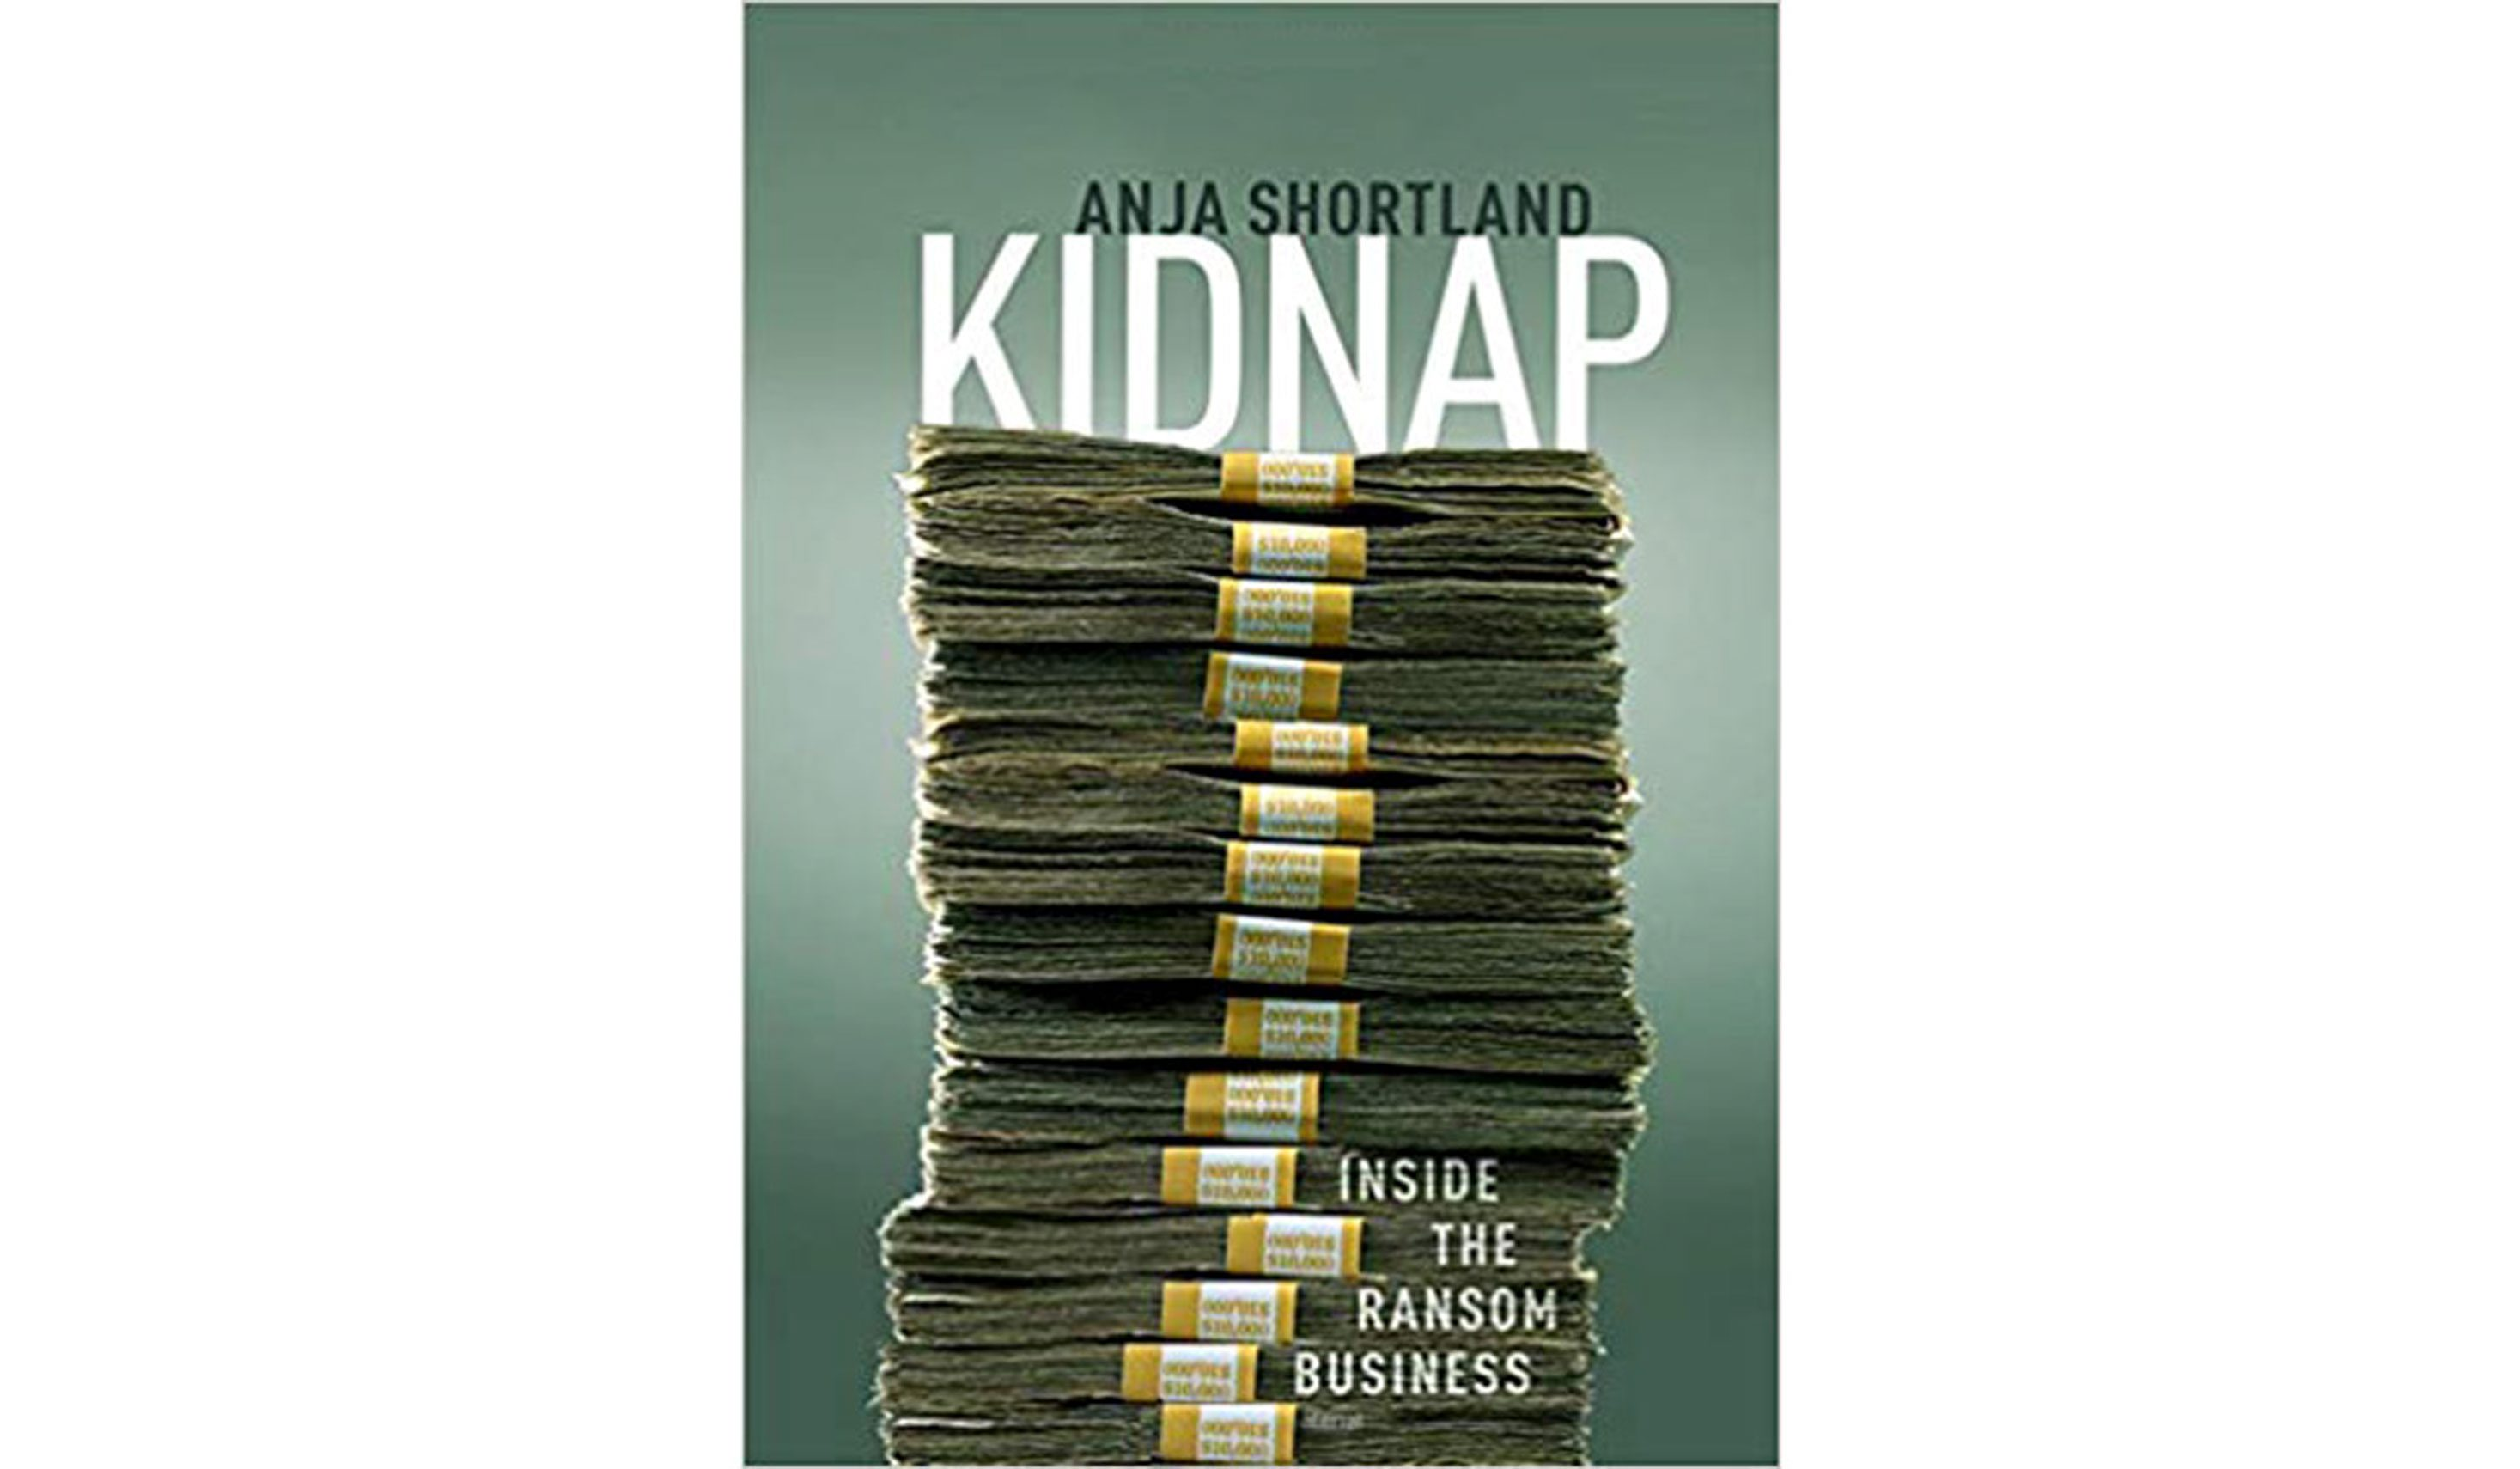 BOOK REVIEW: 'Kidnap: Inside the Ransom Business' by Anja Shortland